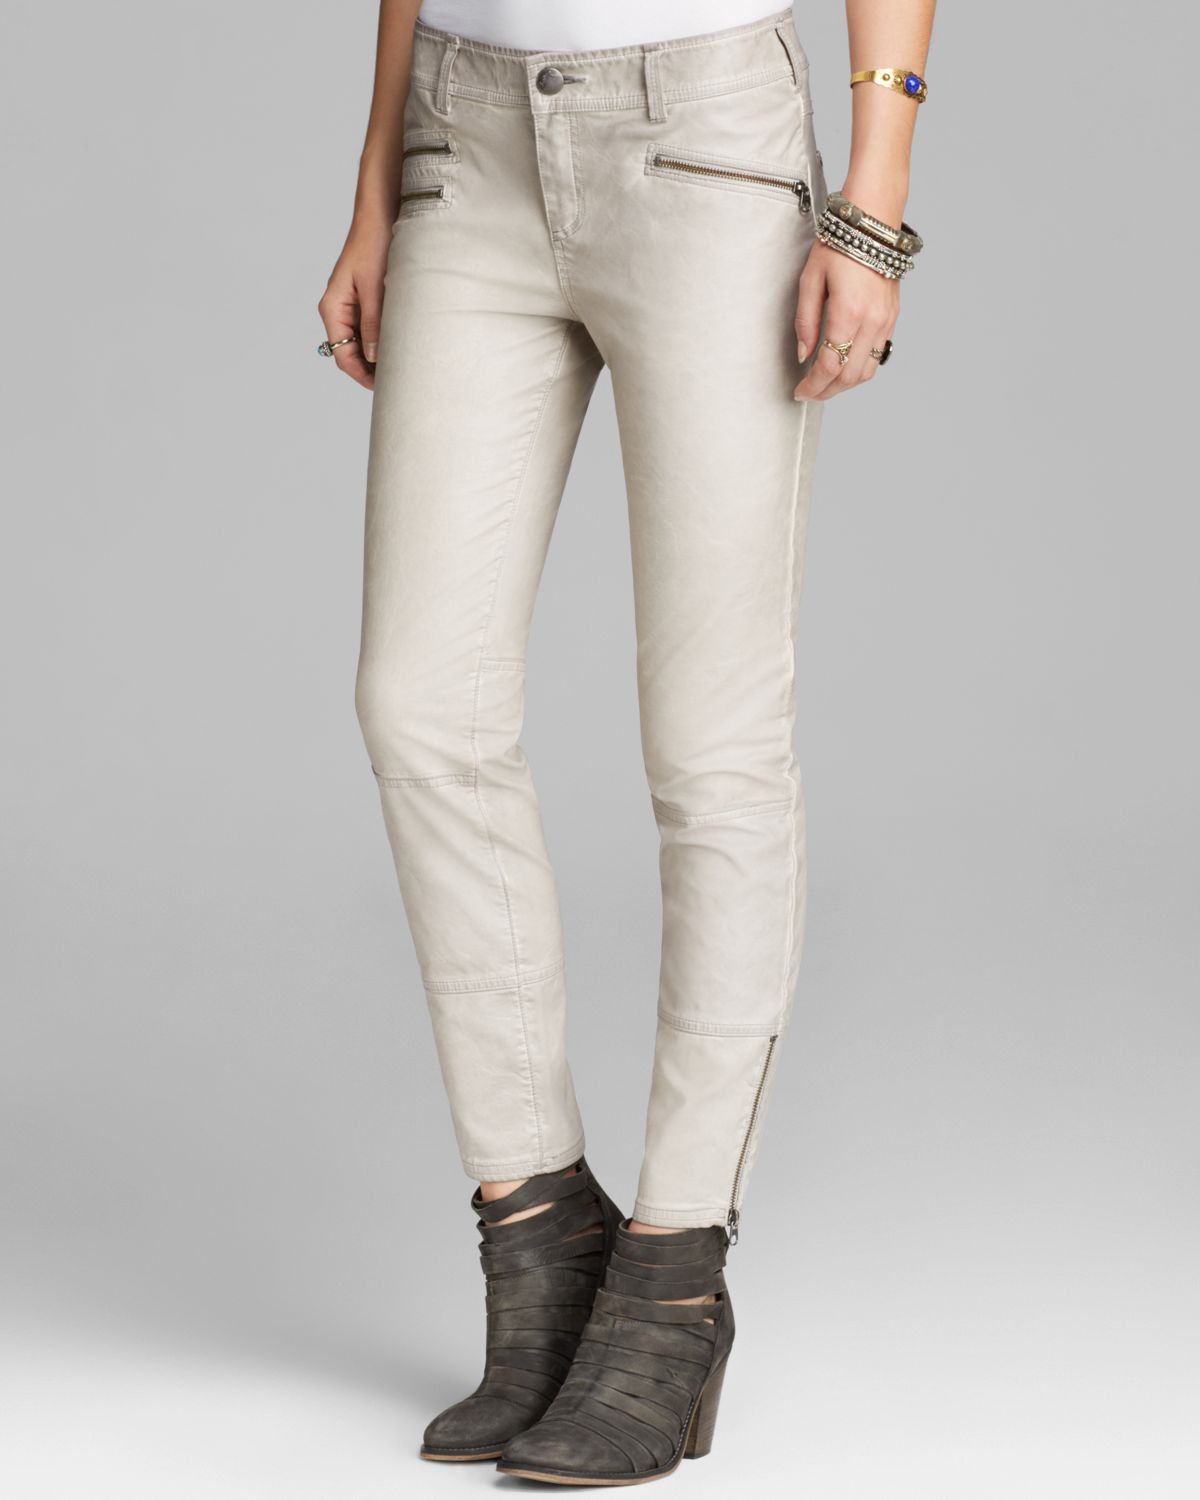 You searched for: white leather pants! Etsy is the home to thousands of handmade, vintage, and one-of-a-kind products and gifts related to your search. No matter what you're looking for or where you are in the world, our global marketplace of sellers can help you find unique and affordable options. Let's get started!